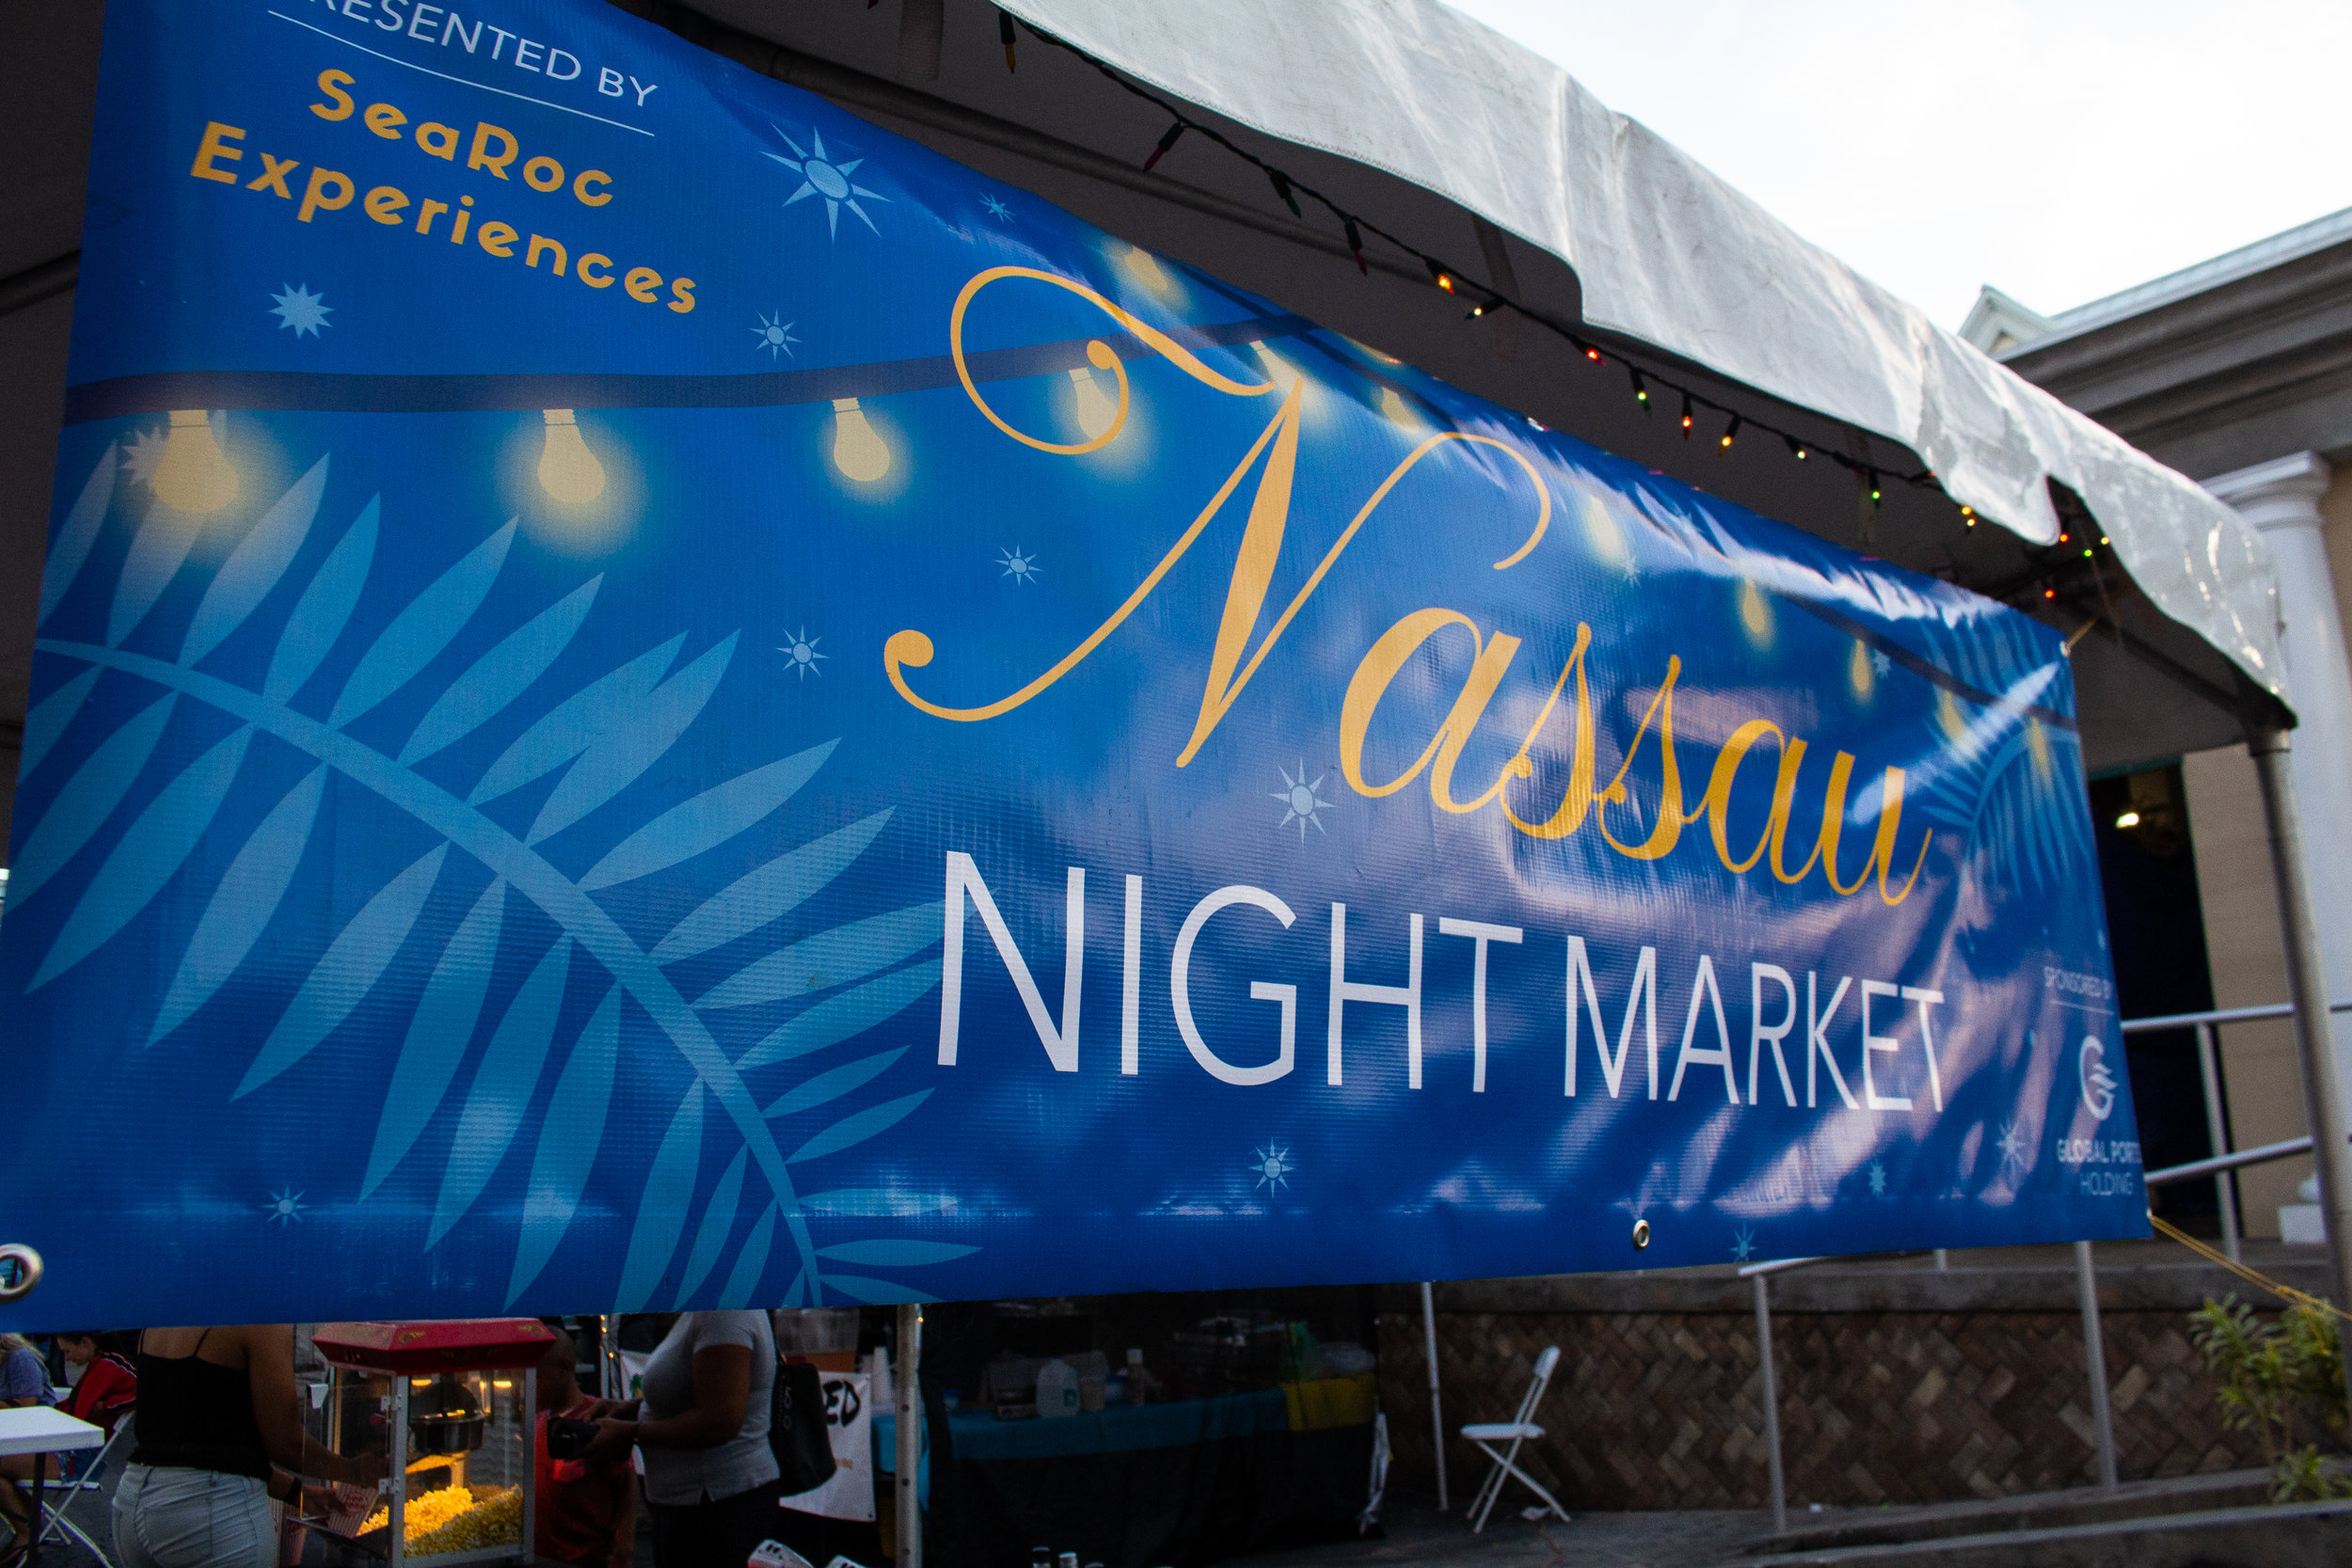 About the event - The Nassau Night Market is an outdoor street festival in the heart of the capital. Offering exciting entertainment, flavorful foods, and precious products.